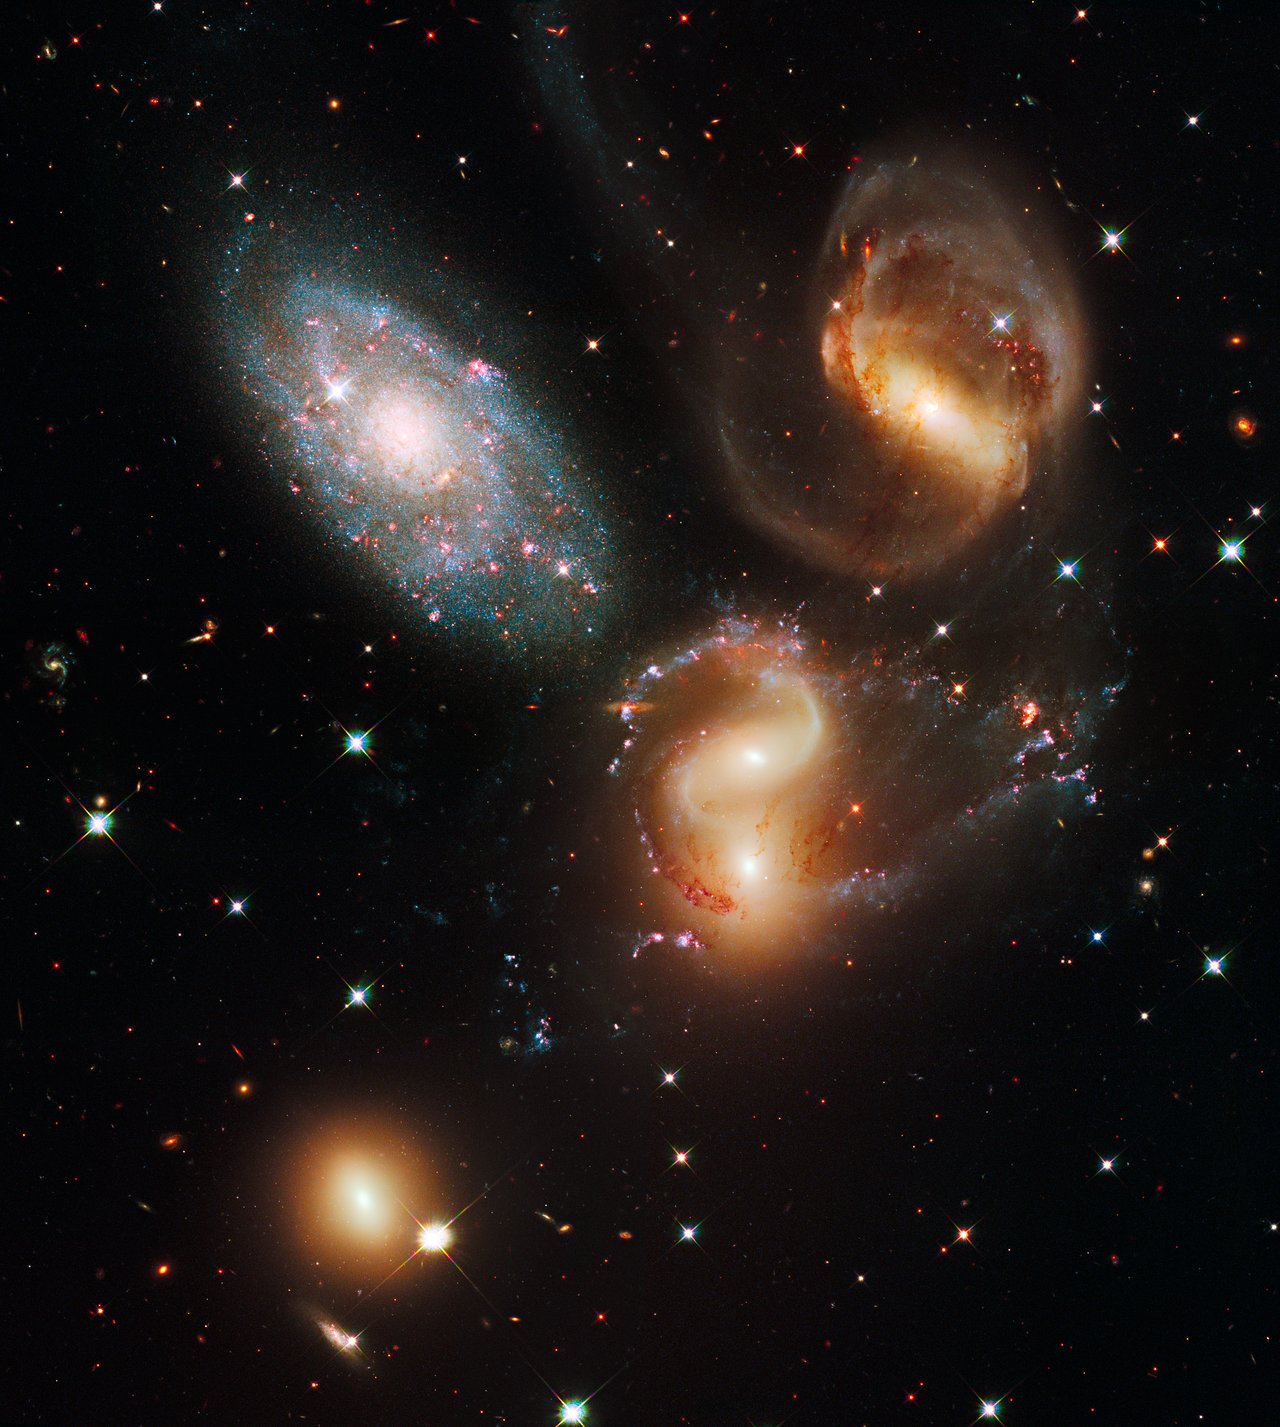 Galactic wreckage in Stephan's Quintet | ESA/Hubble